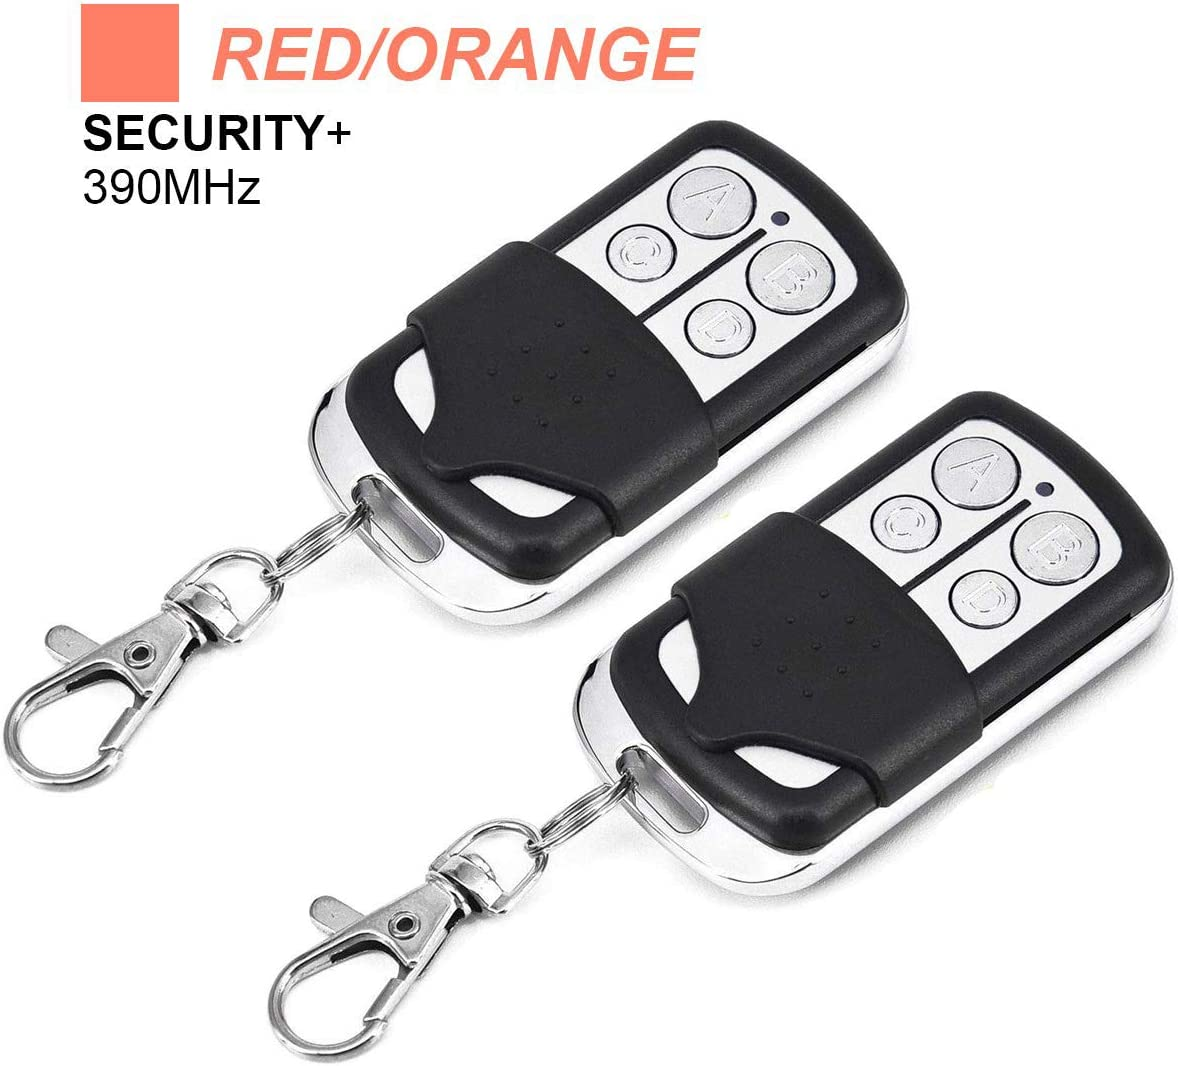 Garage Door Openers Replacement Remote 2 Pack for LiftMaster 970LM 971LM 972LM 973LM - Chamberlain 953CB - Craftsman 139.53681 Remote - Compatible with Red/Orange Learn Button 390MHz